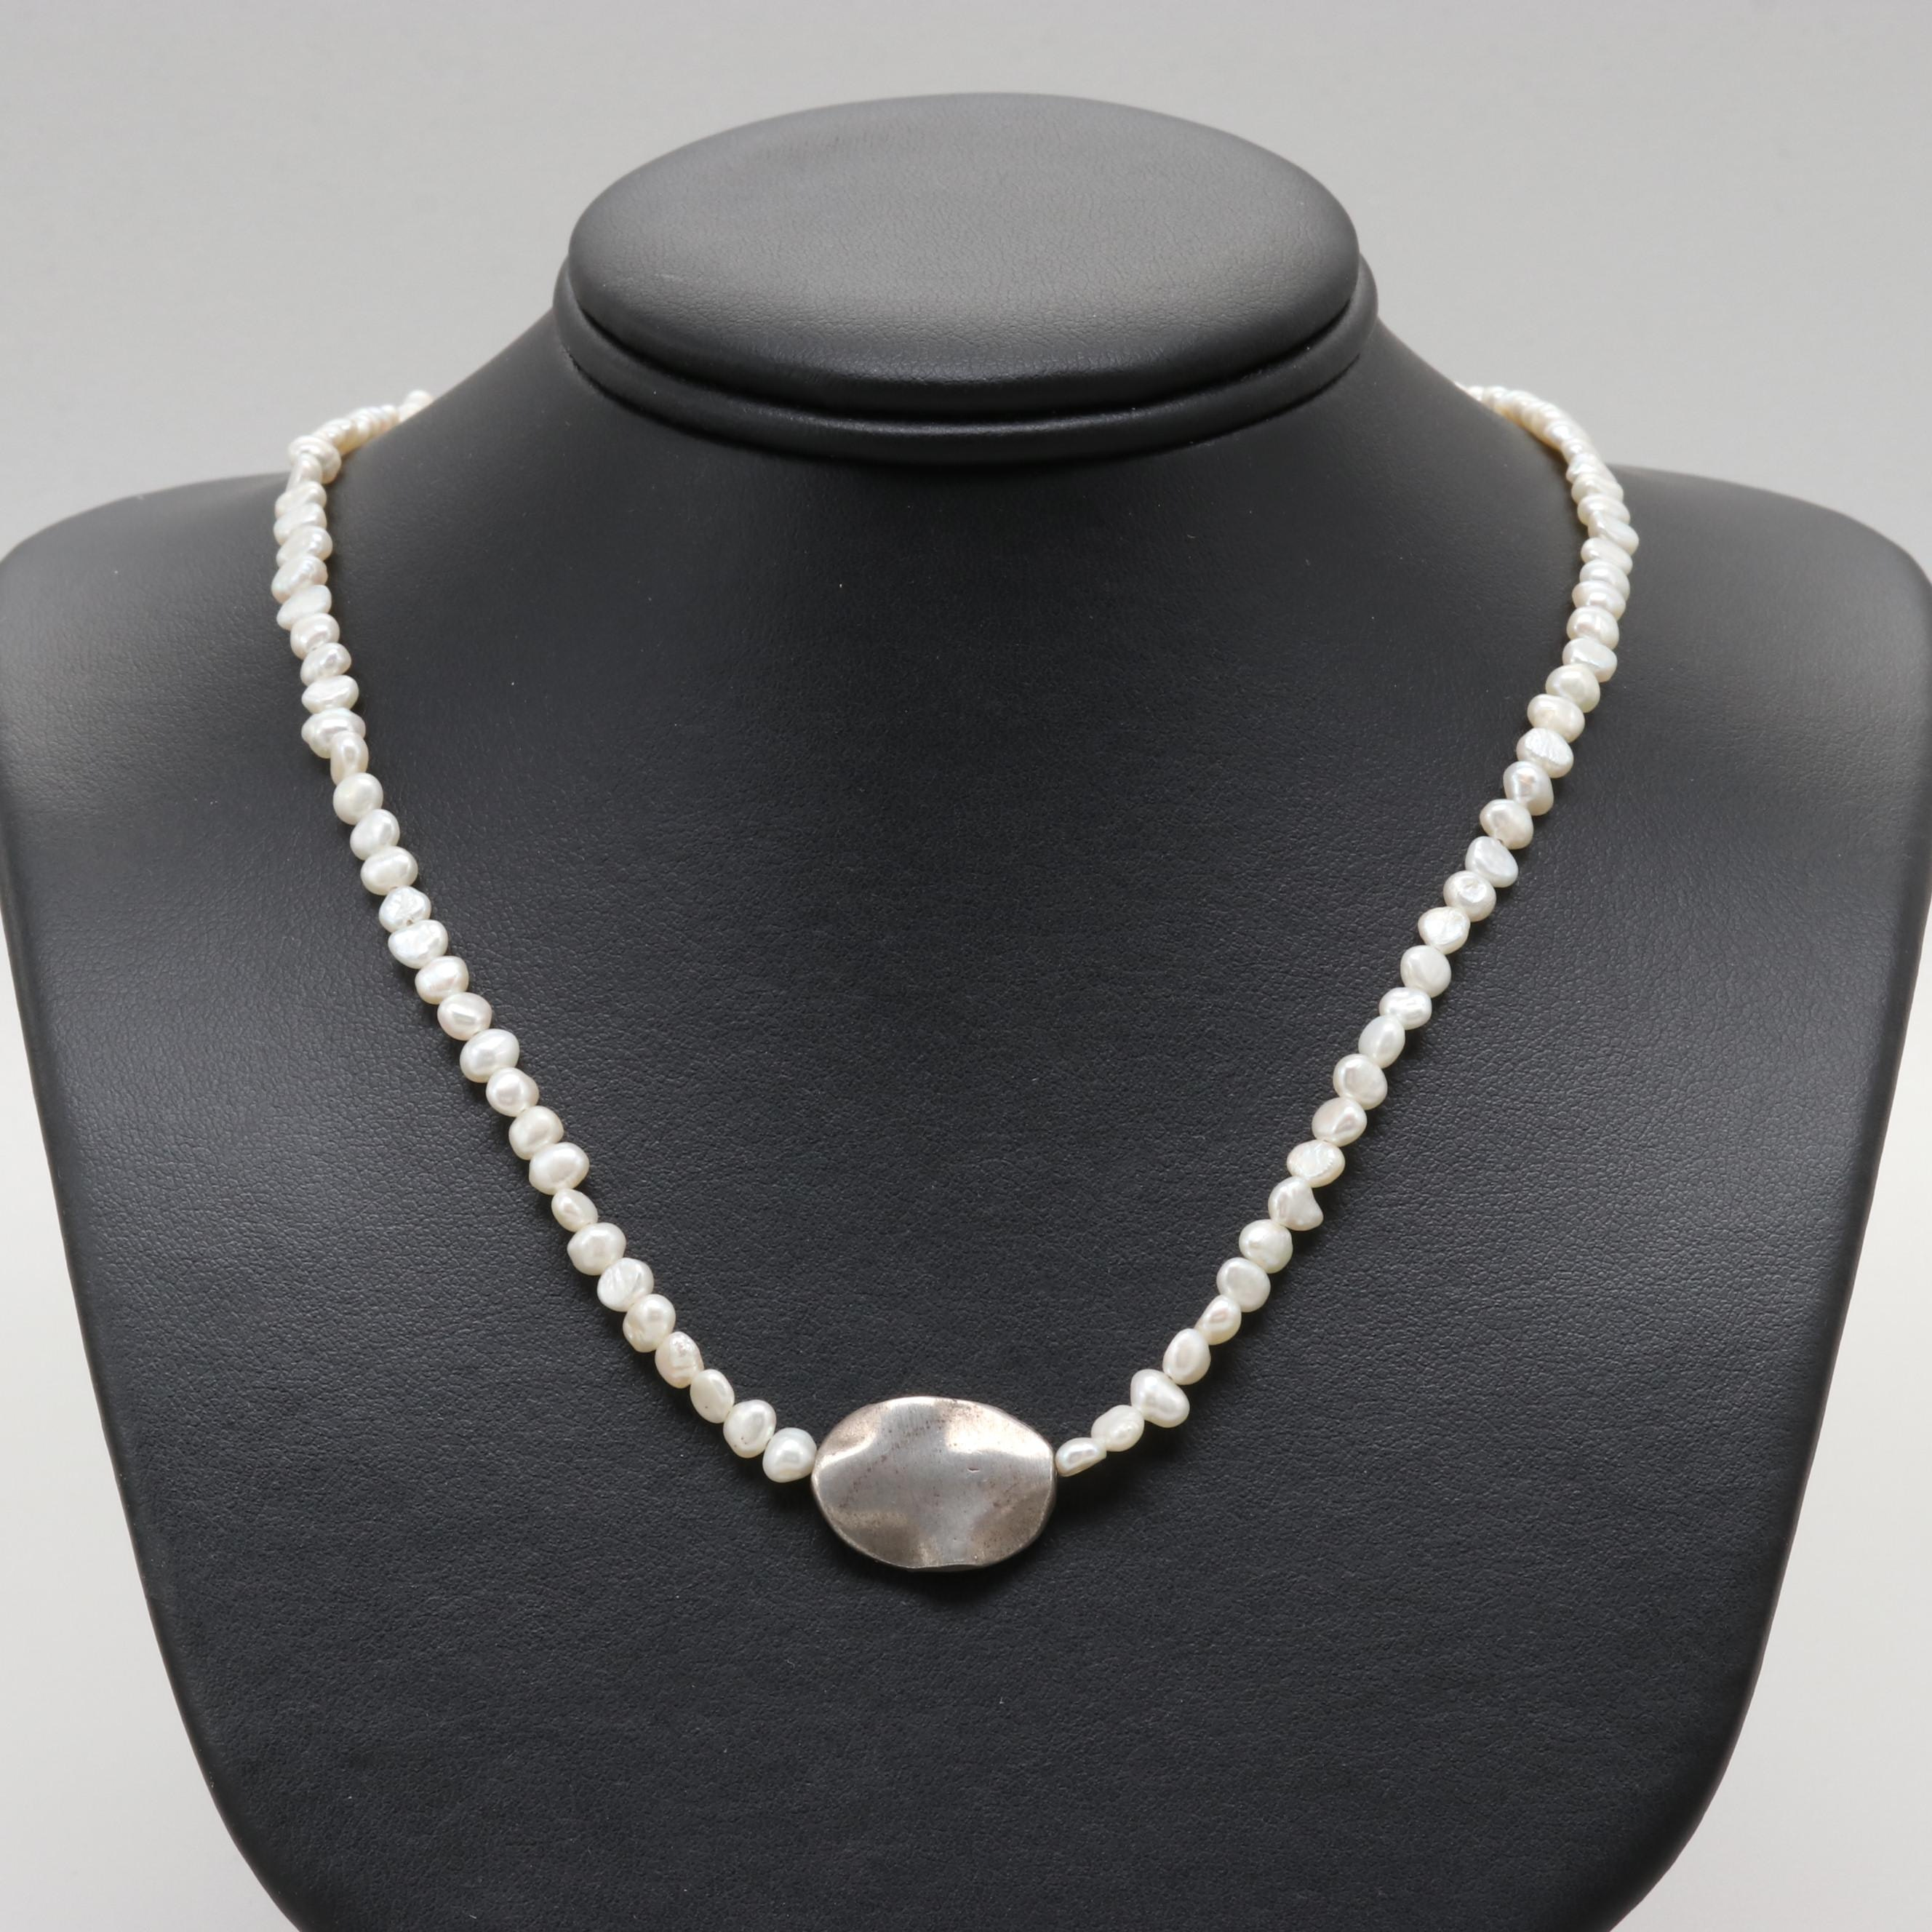 J. Jill Sterling Silver Cultured Pearl Necklace